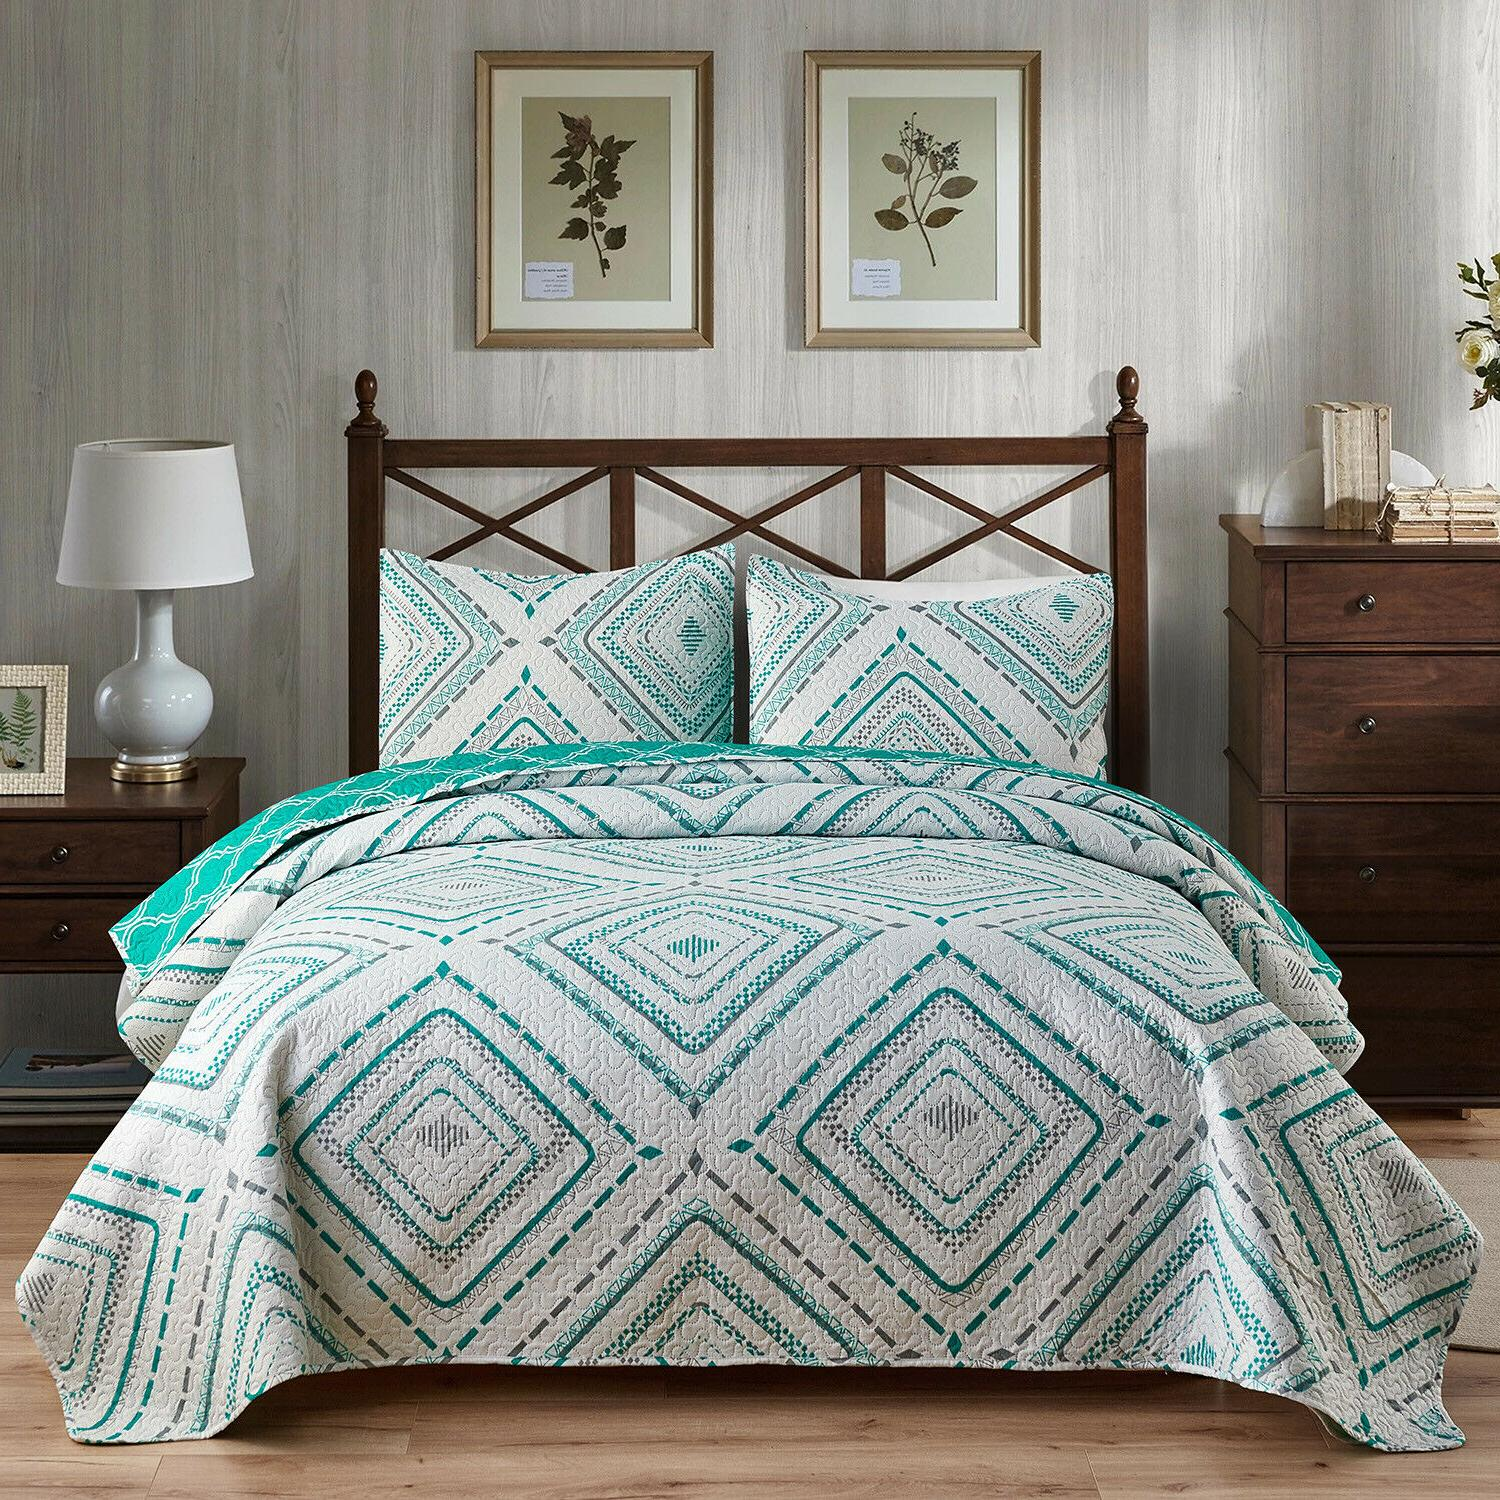 3pc Plaid Bedspread/Quilt Set